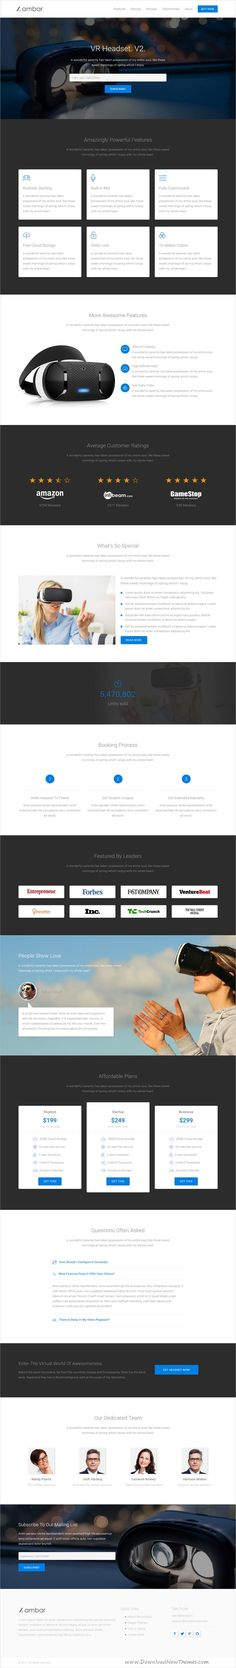 Ambar is a wonderful responsive #HTML5 bootstrap template for a product, #service, agency, marketing or app #landingpage websites with 9+ homepage layouts in light and dark versions download now➩ https://wrapbootstrap.com/theme/ambar-bootstrap-landing-page-template-WB0X4F5B8?ref=datasata